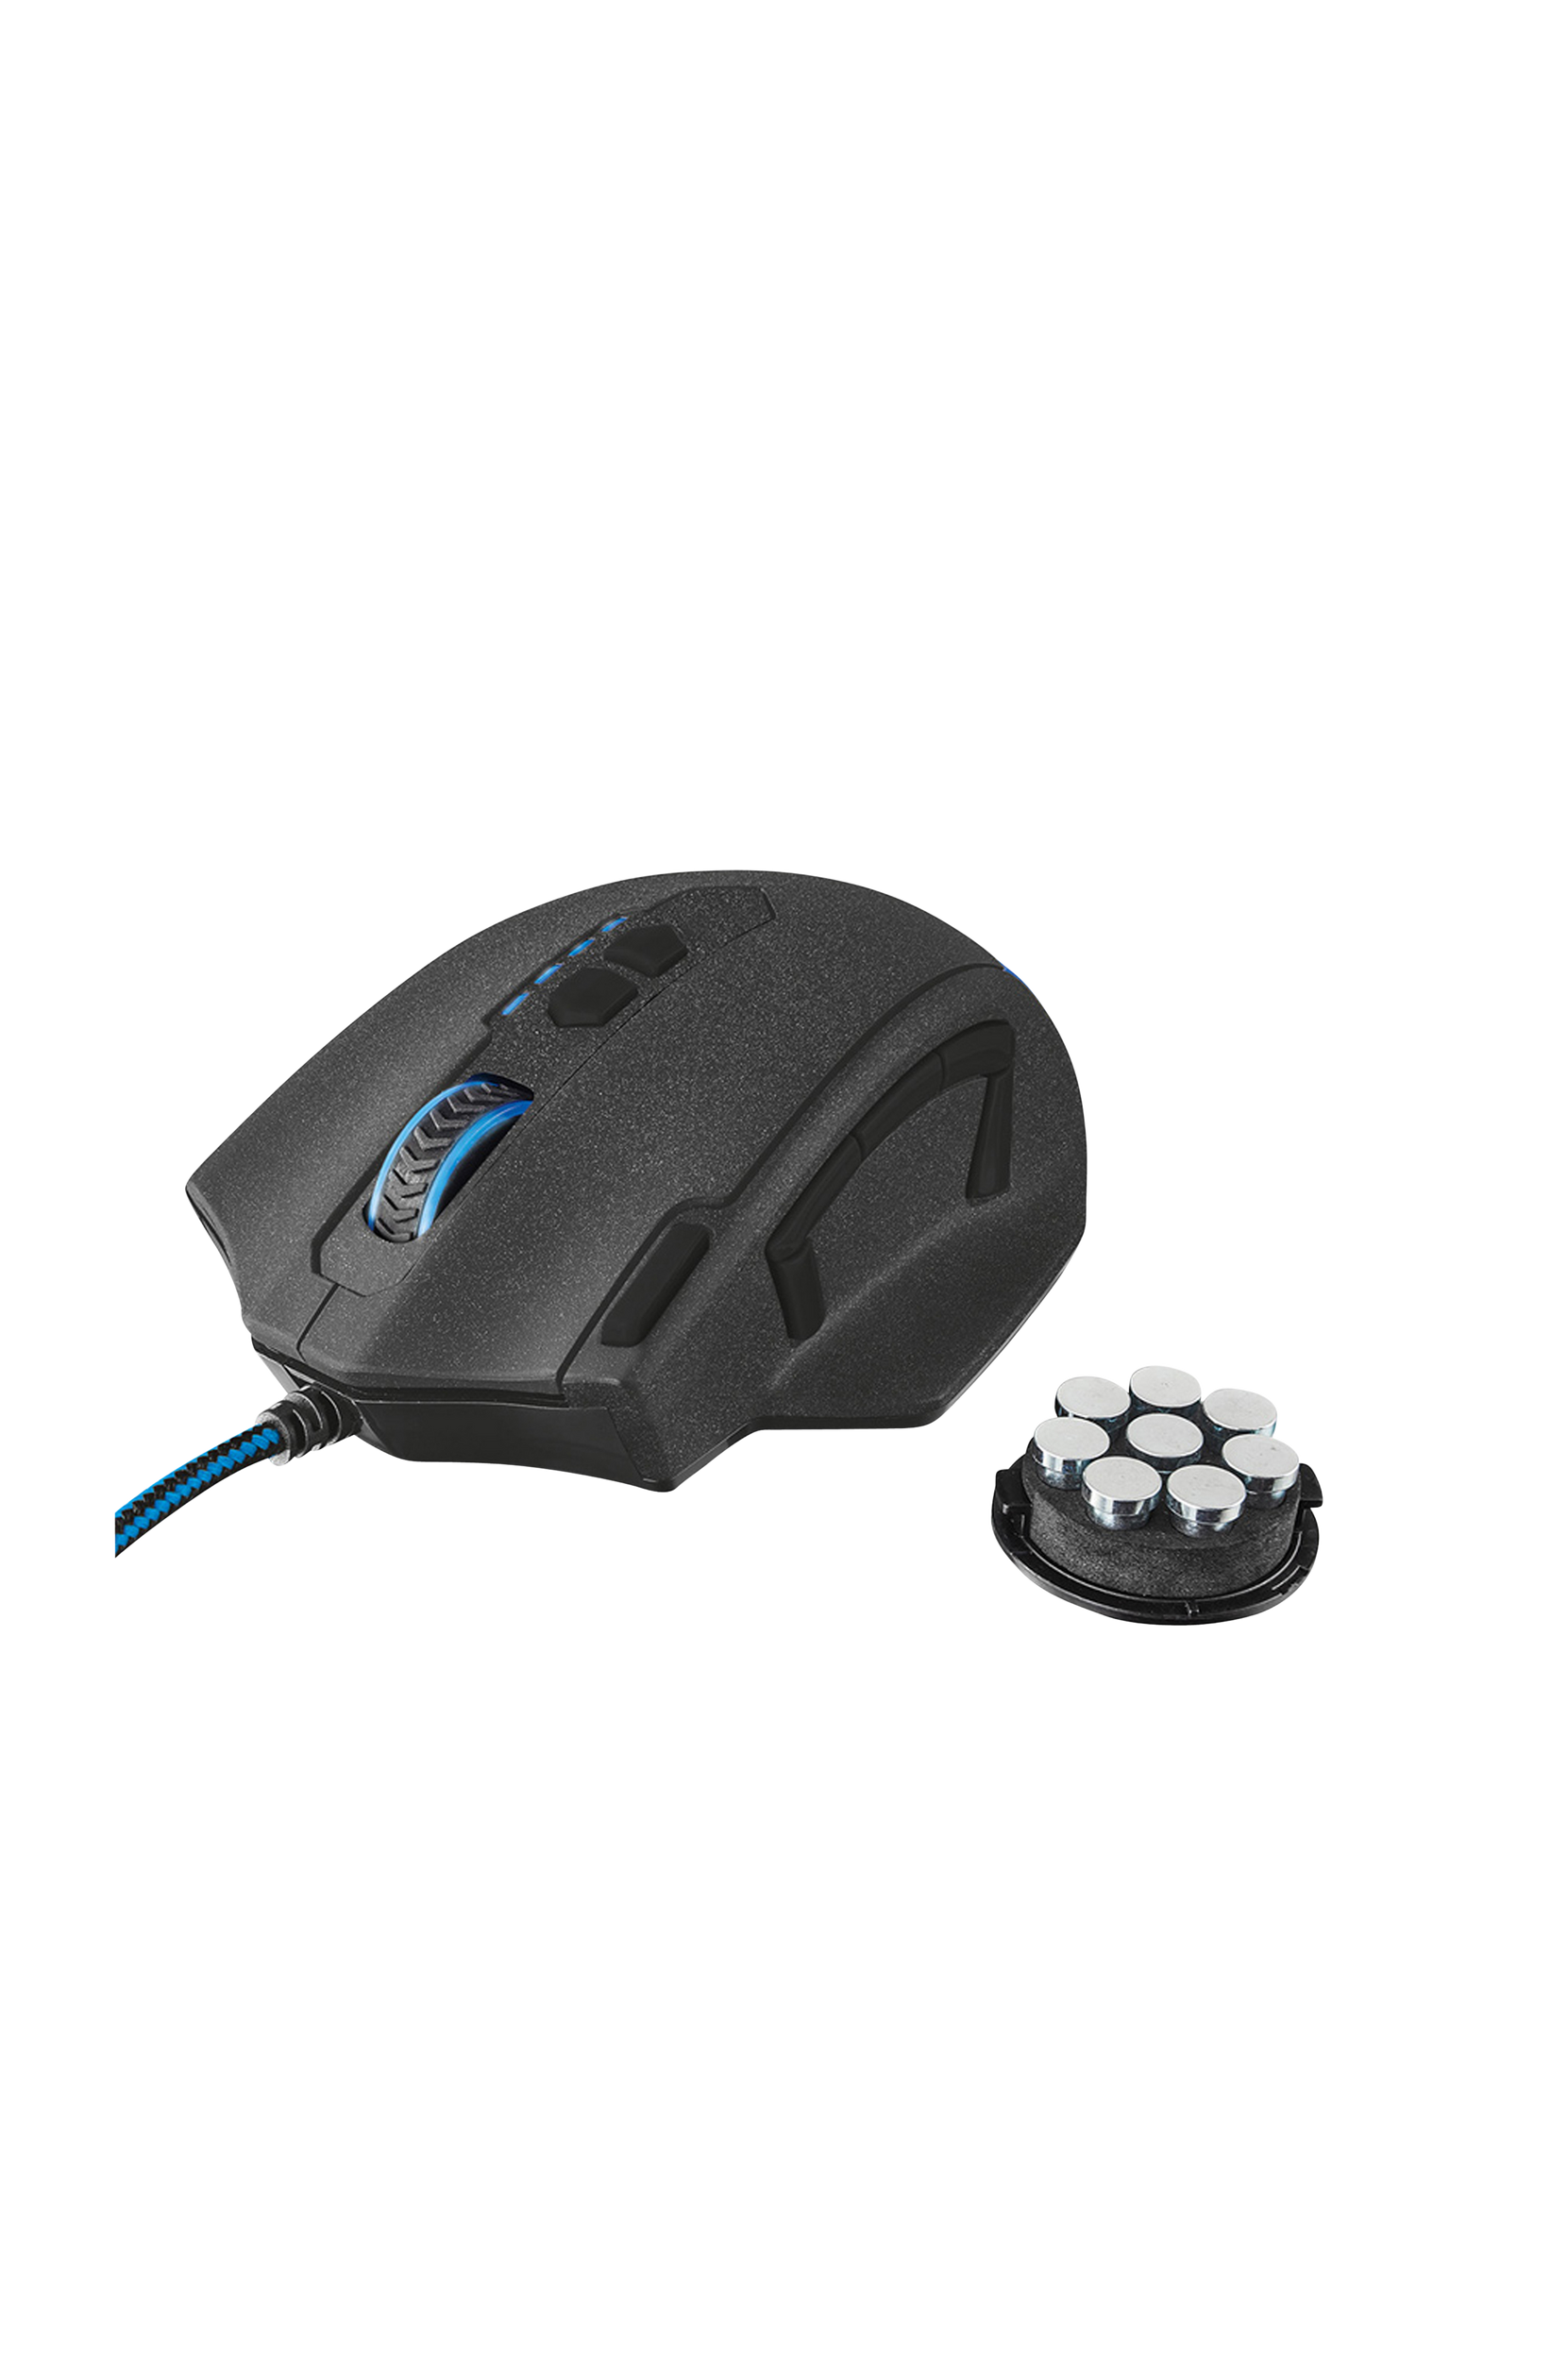 GXT 155 Gaming Mouse